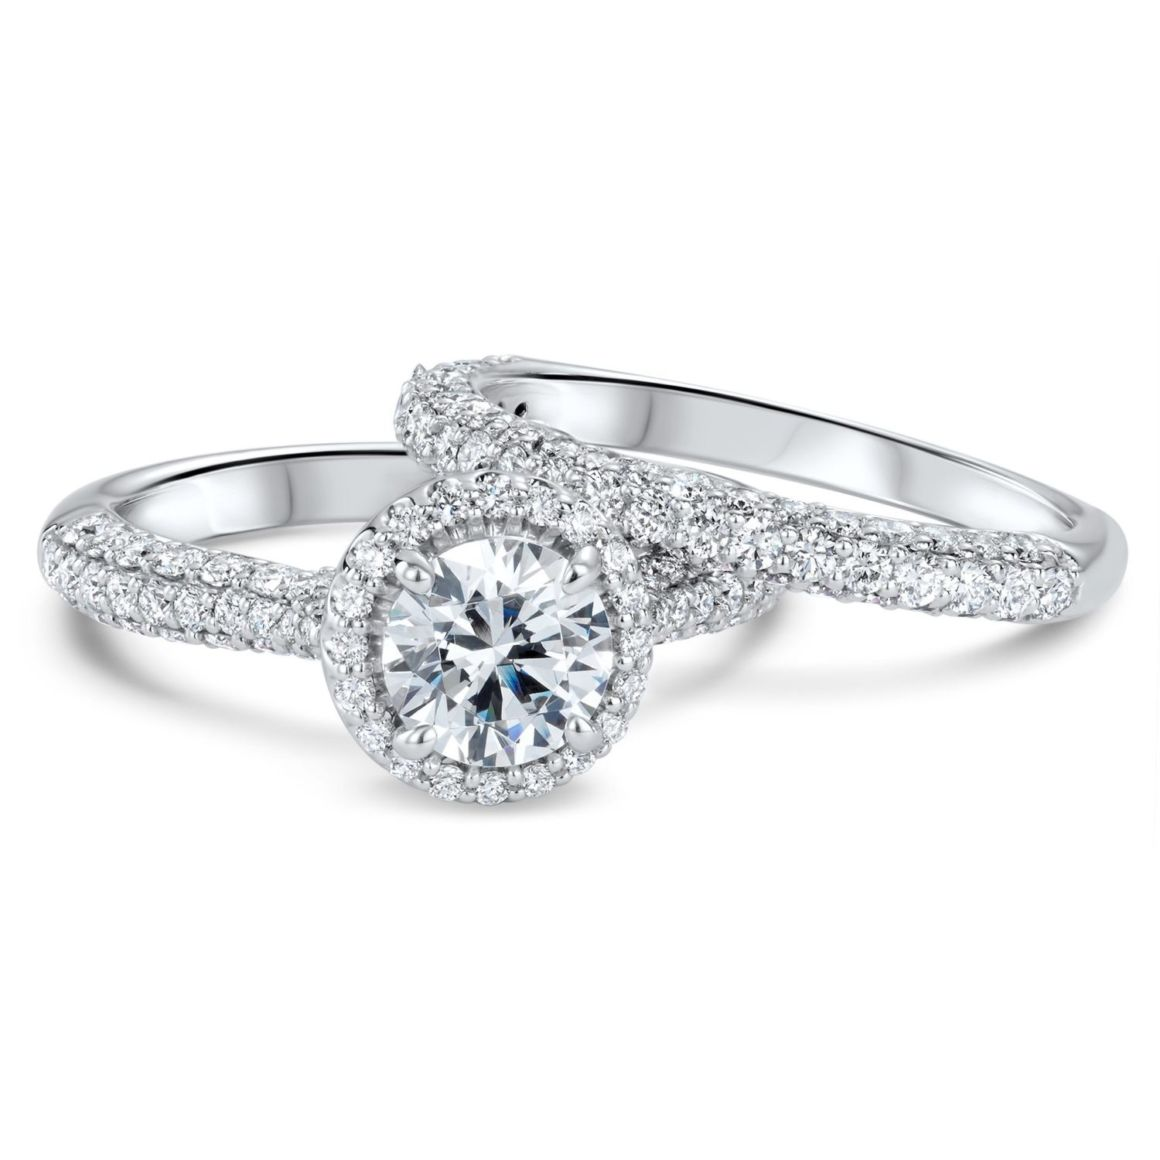 engagement channel ecff pave rings and wedding braw diamond catalog with matching background ring baskin